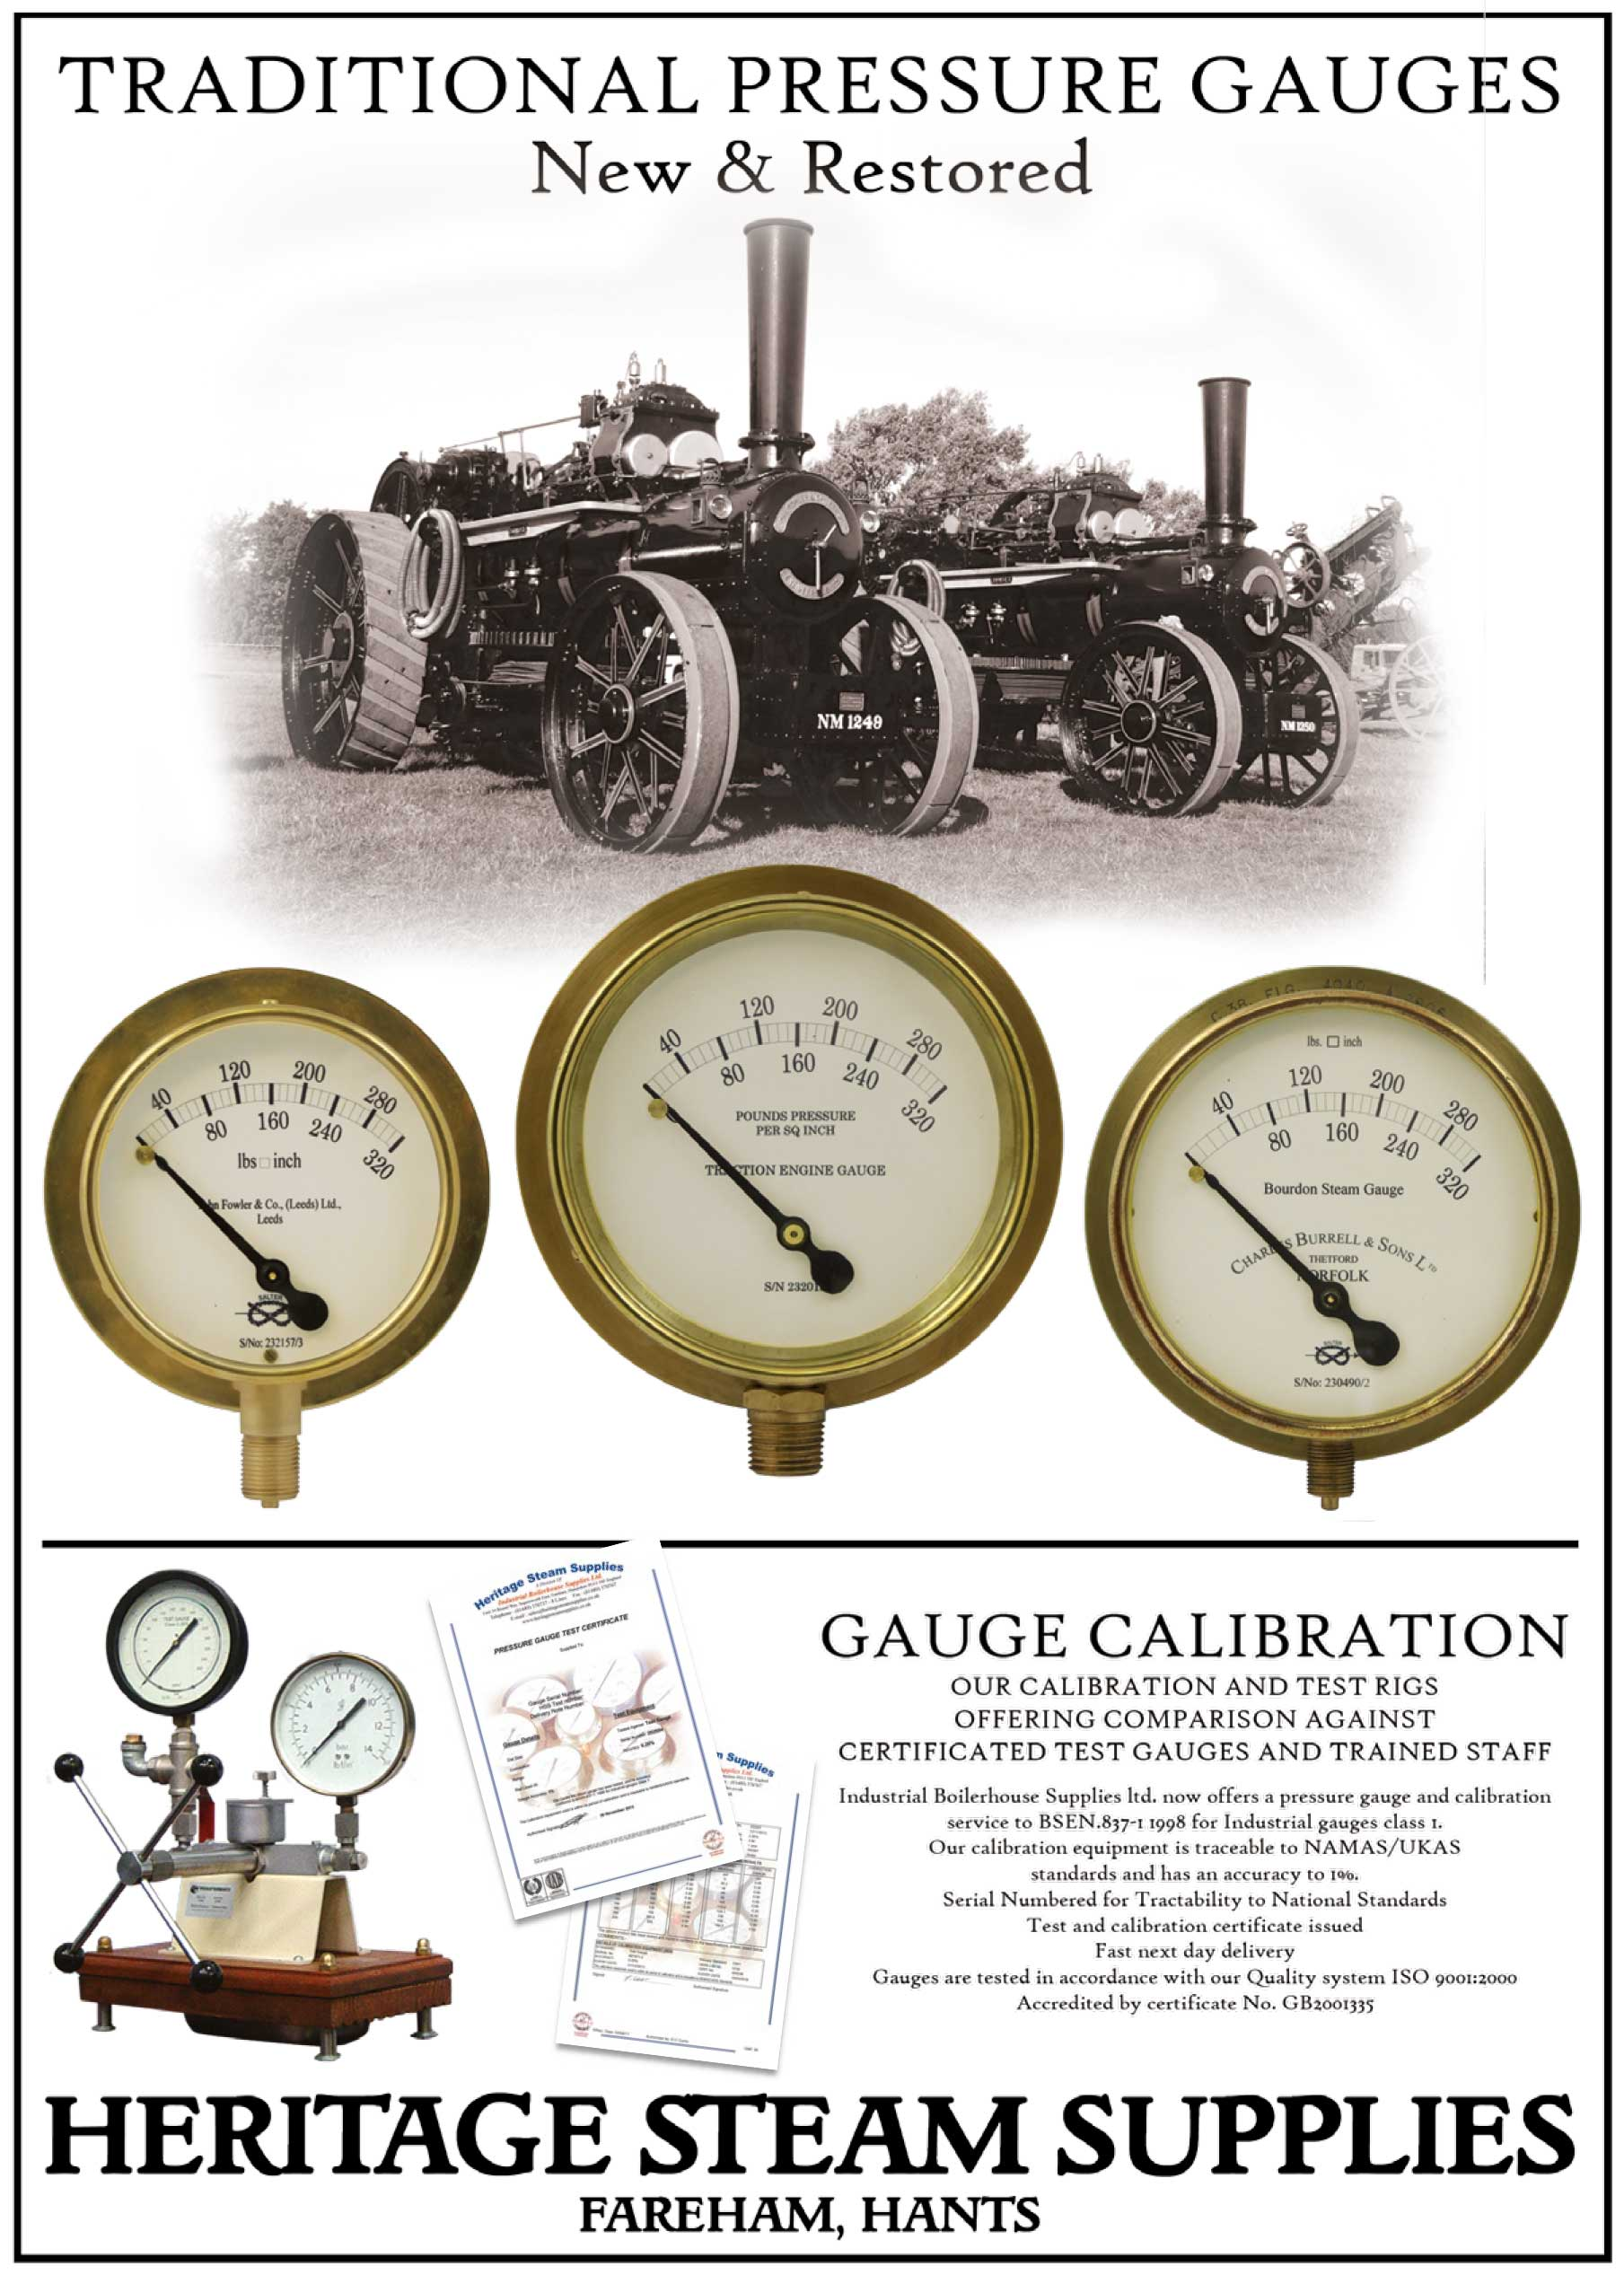 Traditional Pressure Gauges